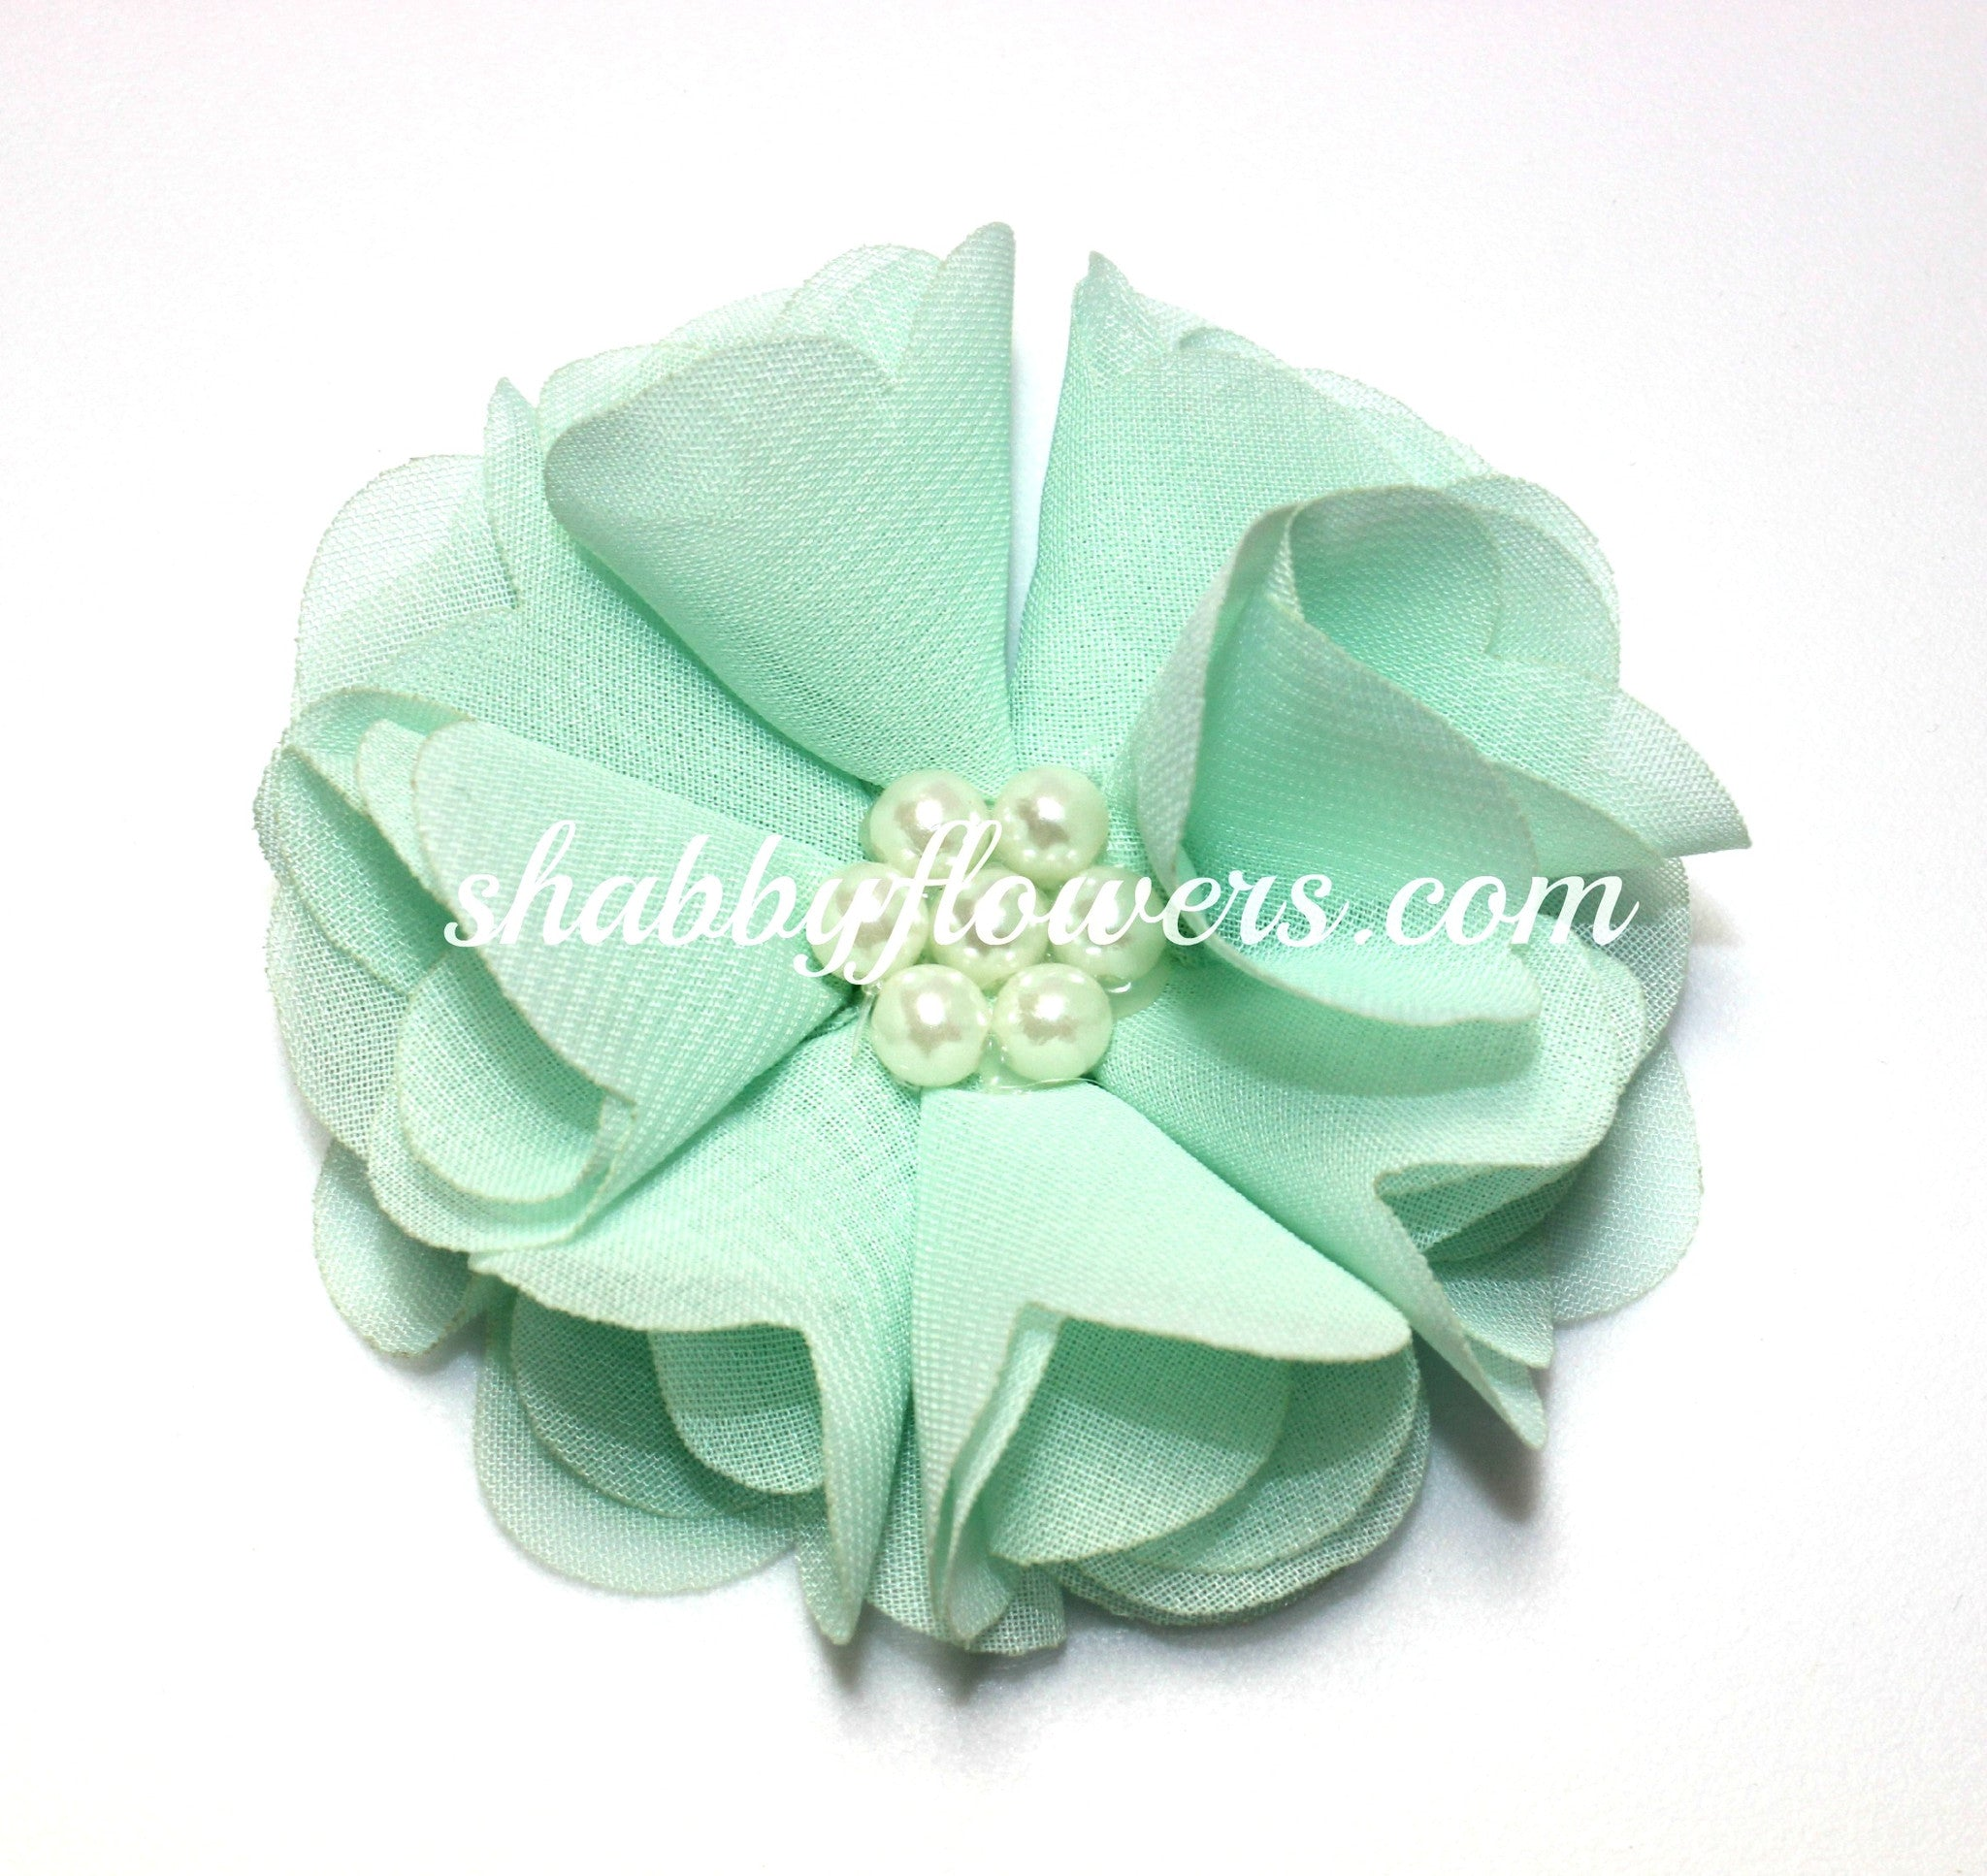 Chiffon Pearl Flower - Mint - shabbyflowers.com